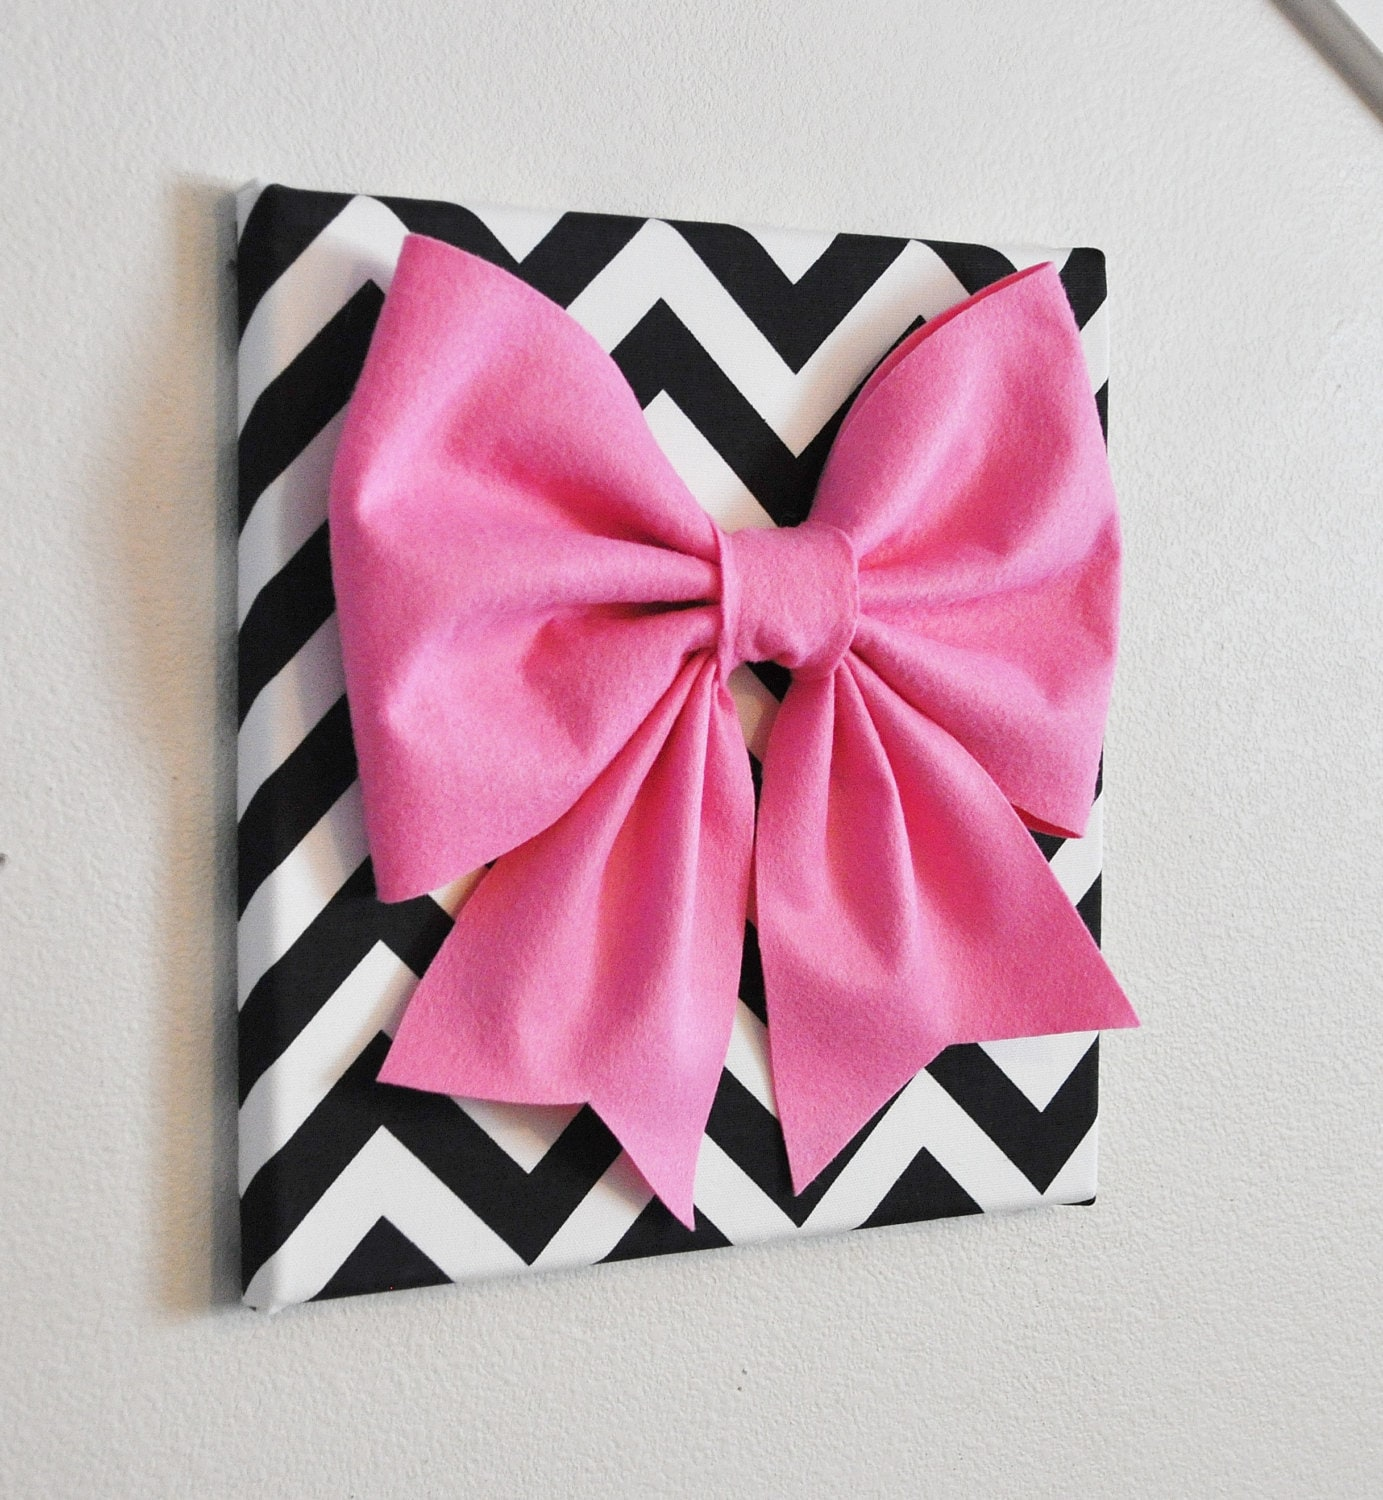 Pink Black Wall Decor : Wall decor large pink bow on black and white chevron